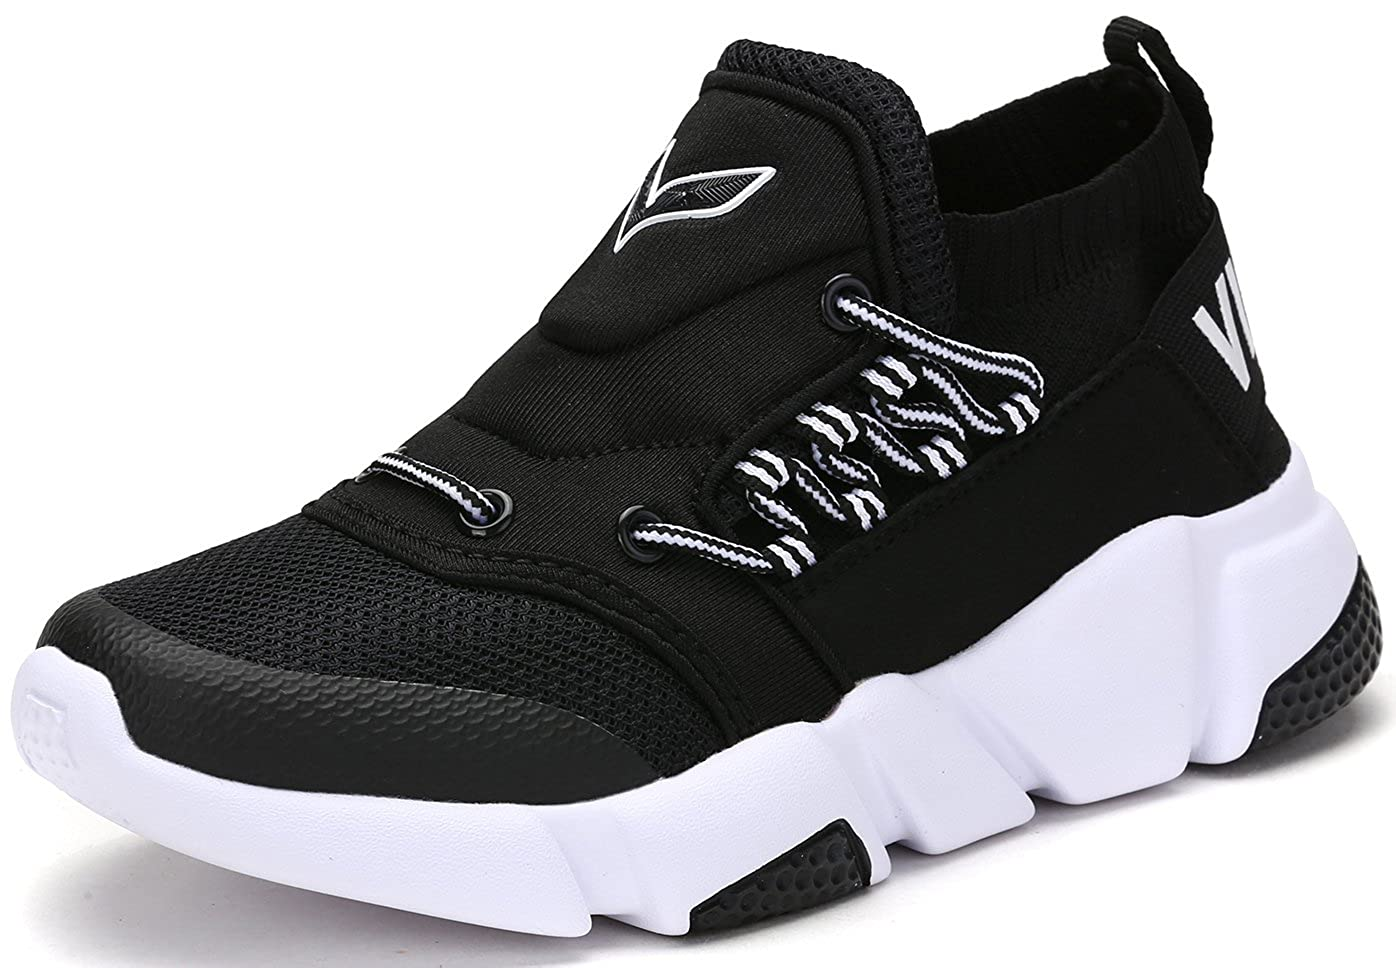 b24e416dd8e075 Amazon.com   VITIKE Sneakers for Boys and Girls, Kids Running Lightweight  Shoes - Athletic Tennis Shoe Comfort Mesh Breathable   Running